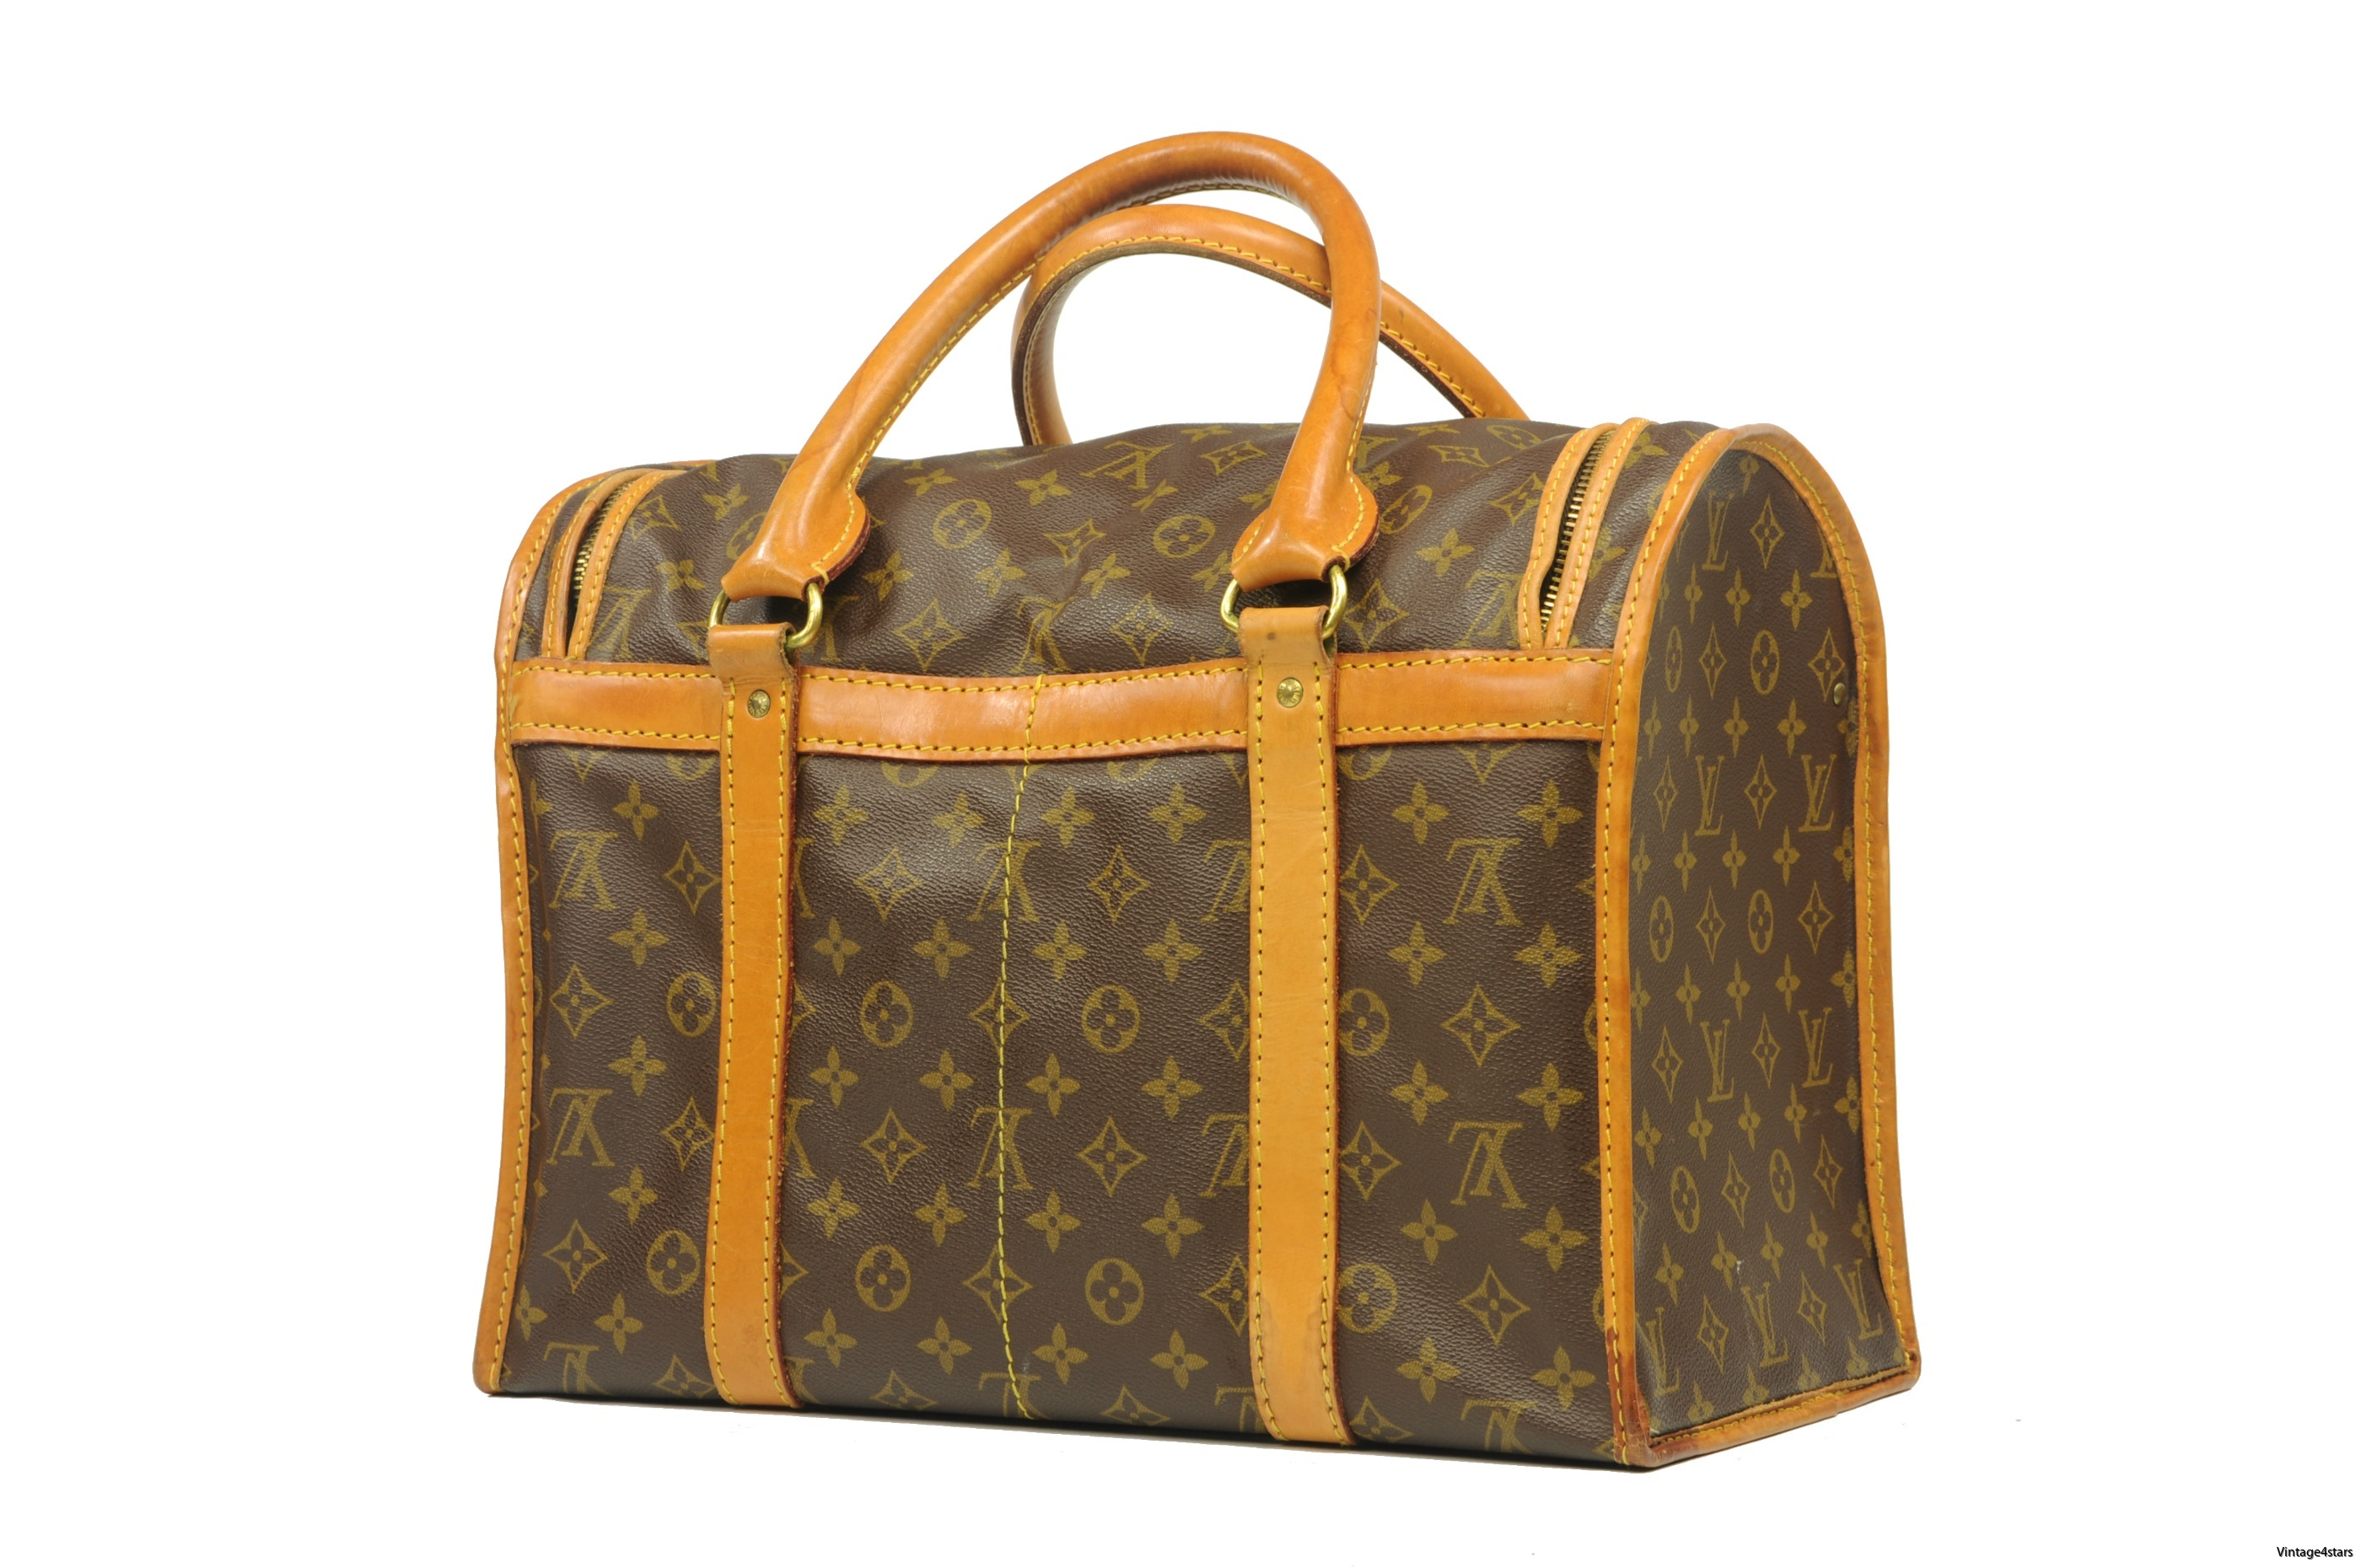 Louis Vuitton Sac Chien 40 2